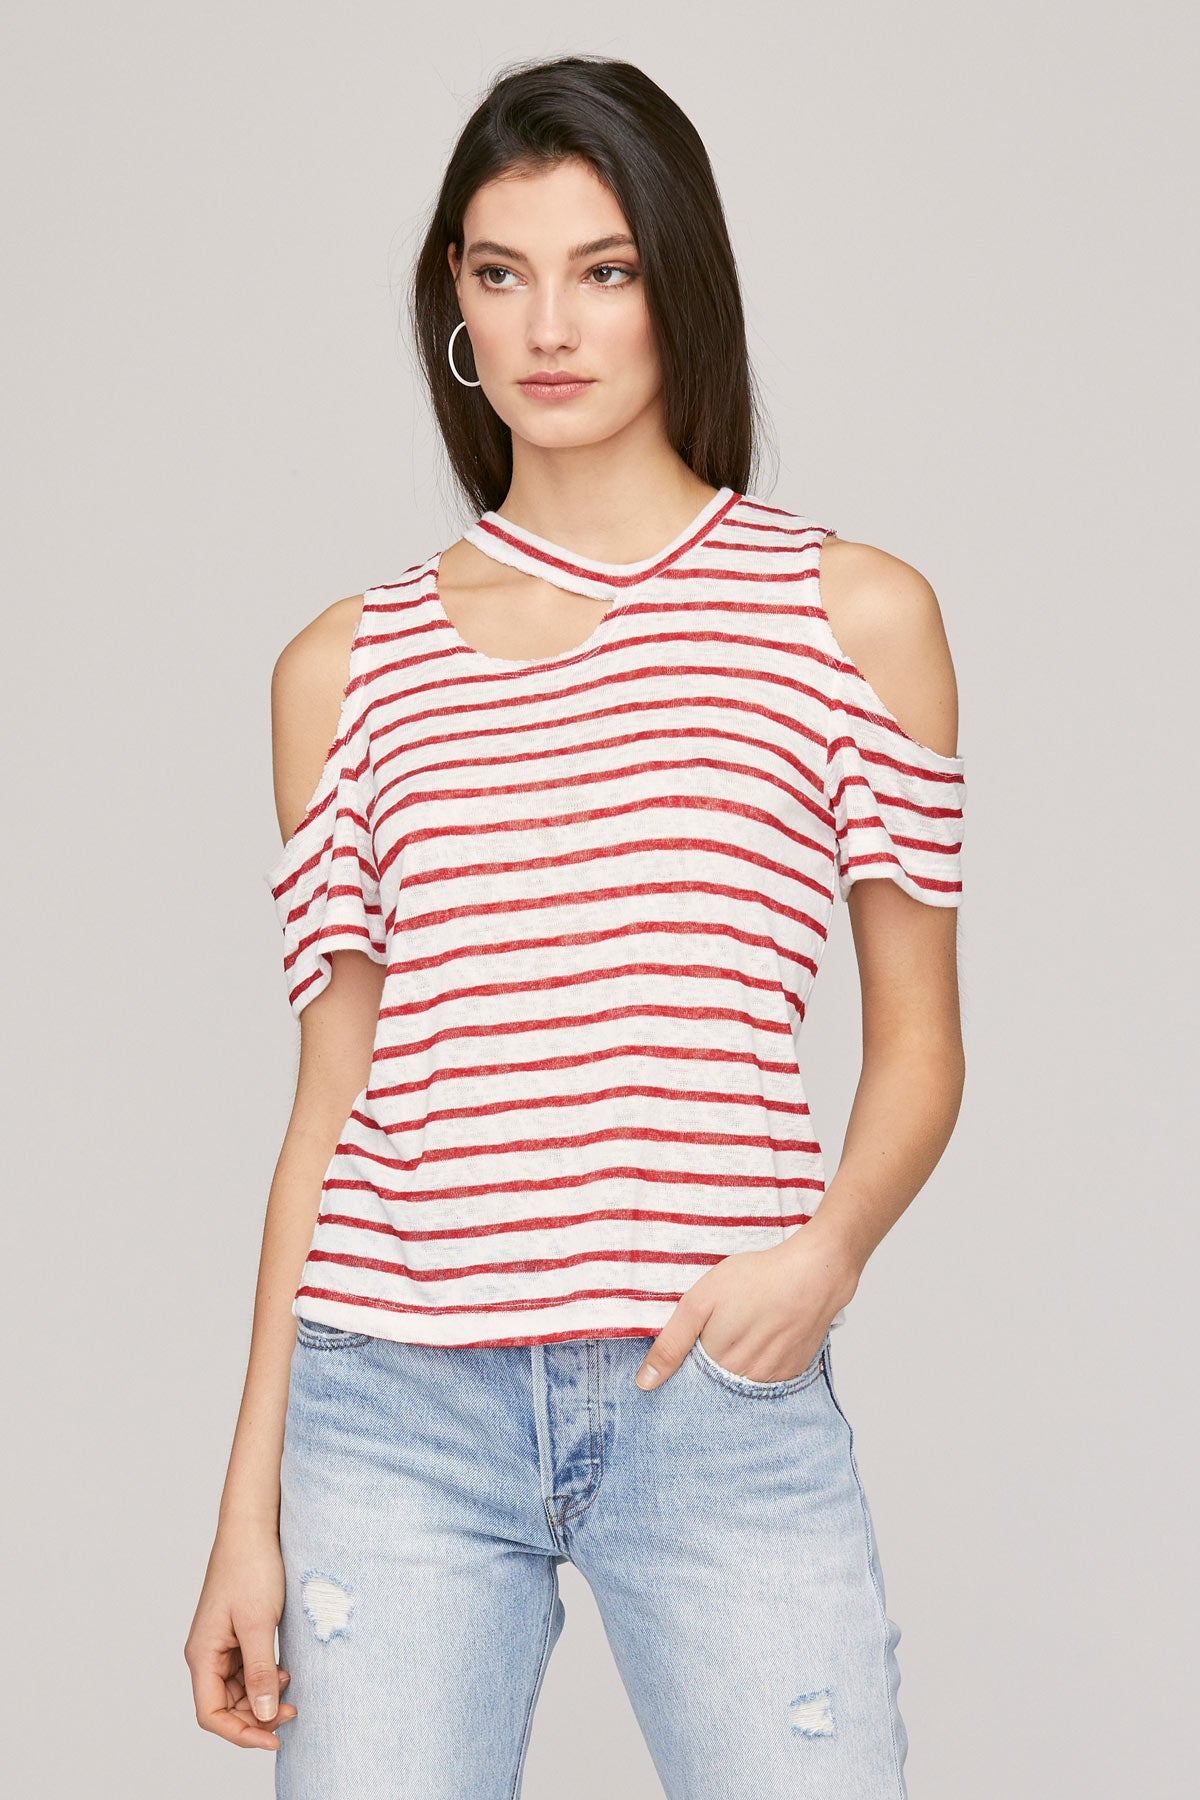 caf83a1704 LNA Clothing – Avalanche Striped Tee - Red & Natural Stripe